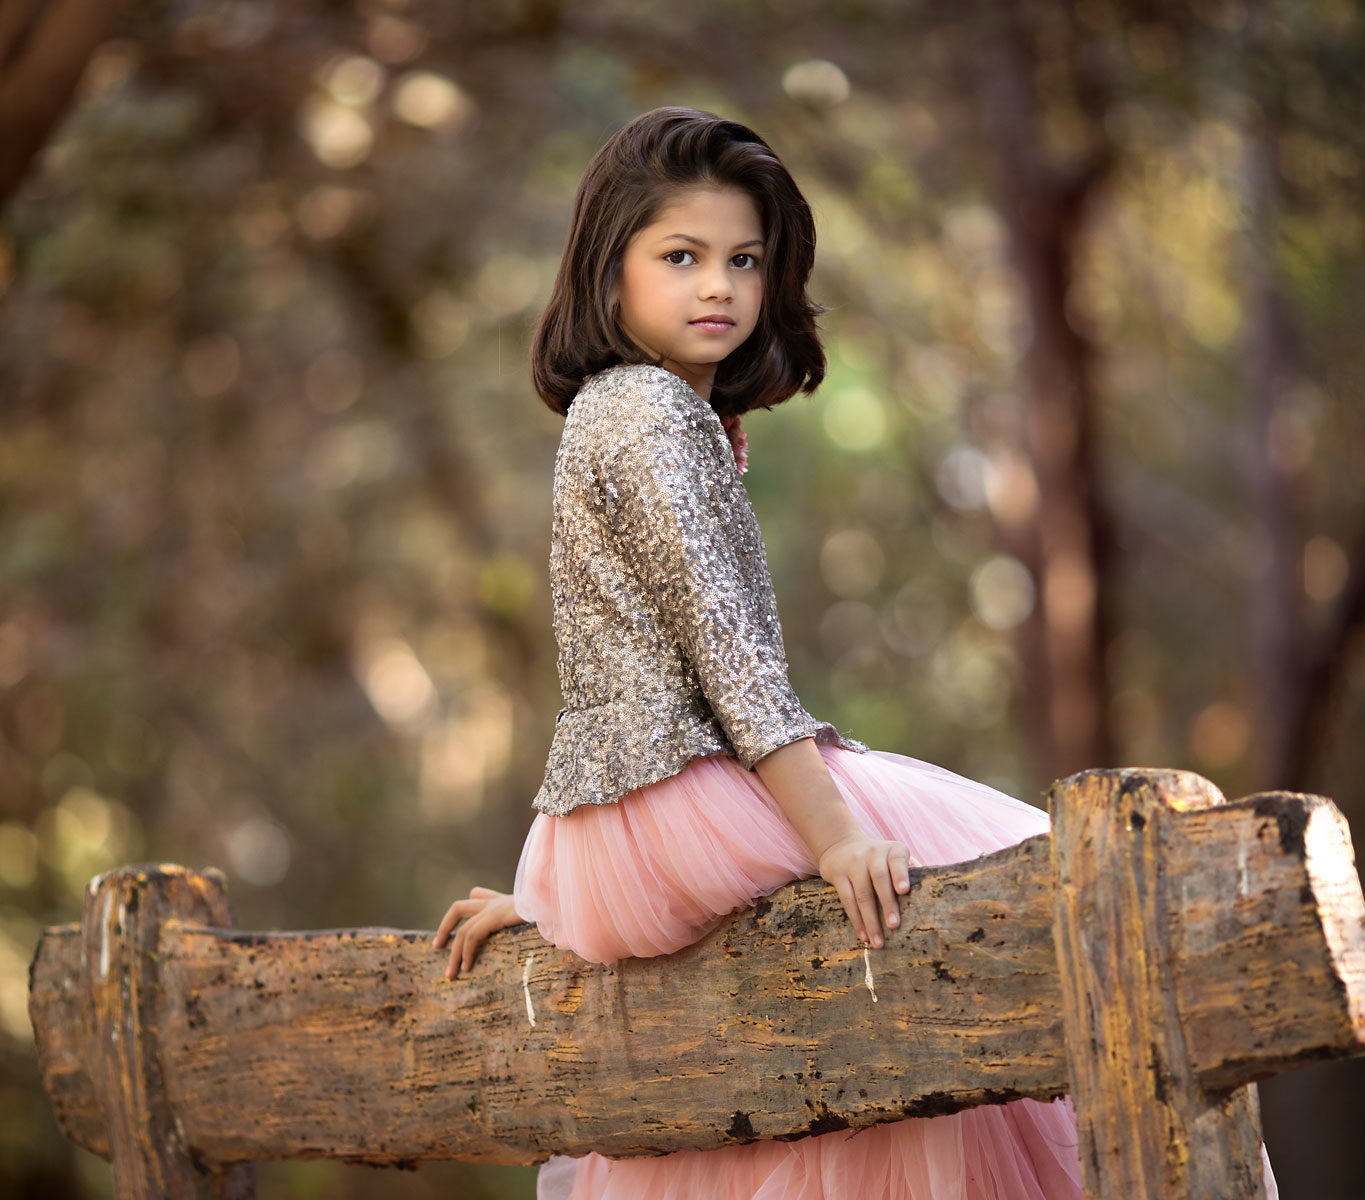 Beautiful 8 year old girl photo session child photographer in pune